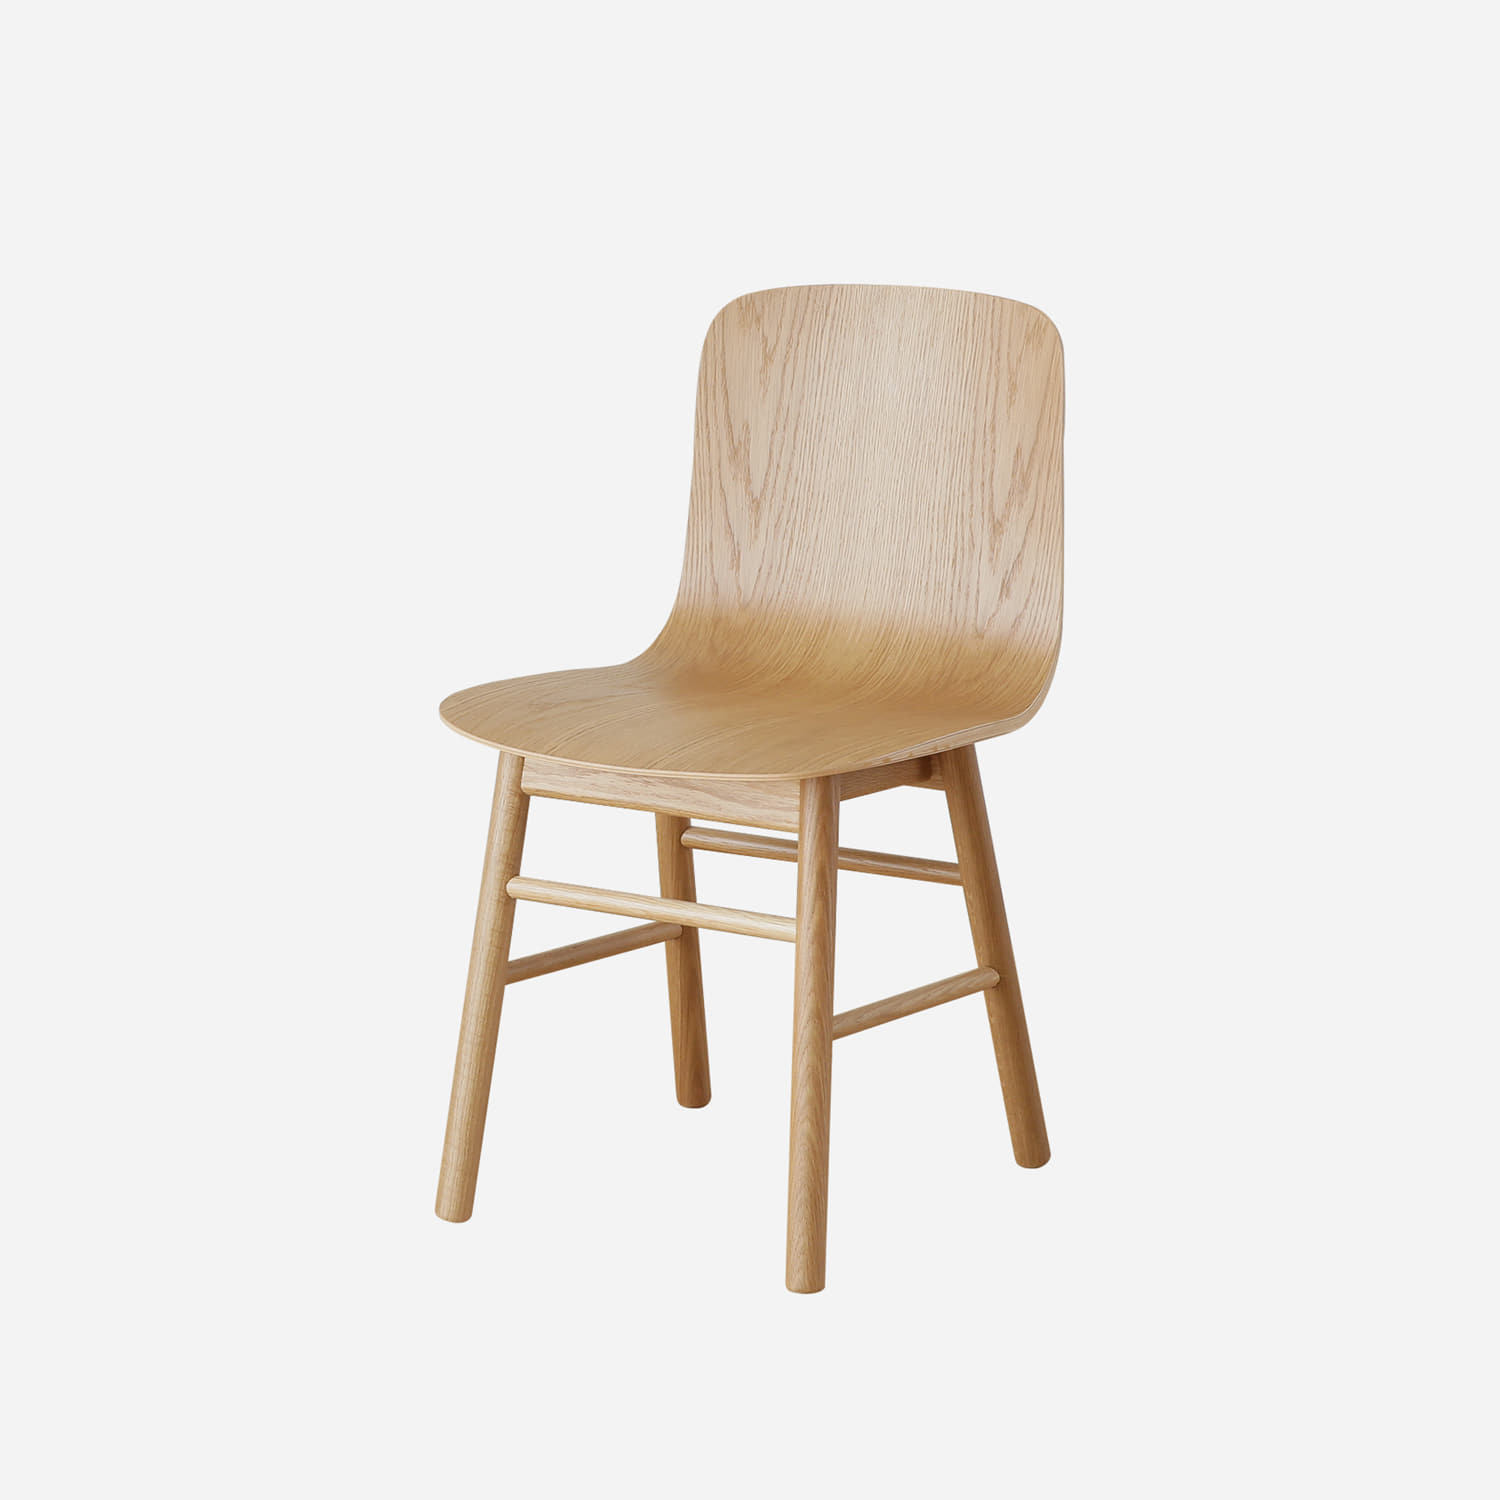 [얼리버드] Oblique Stick Leg P1 Chair